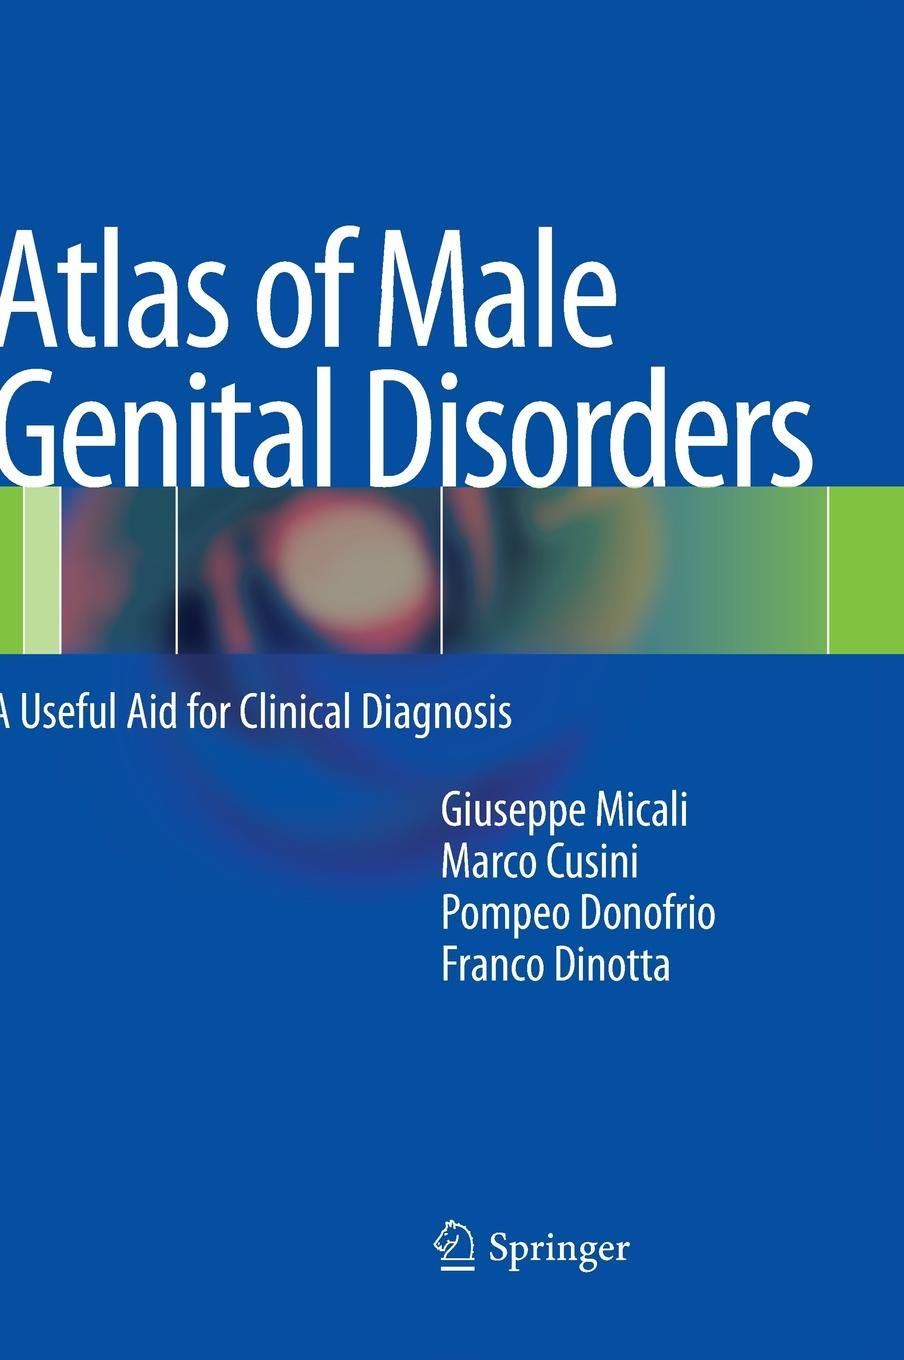 Atlas of Male Genital Disorders: A Useful Aid for Clinical Diagnosis